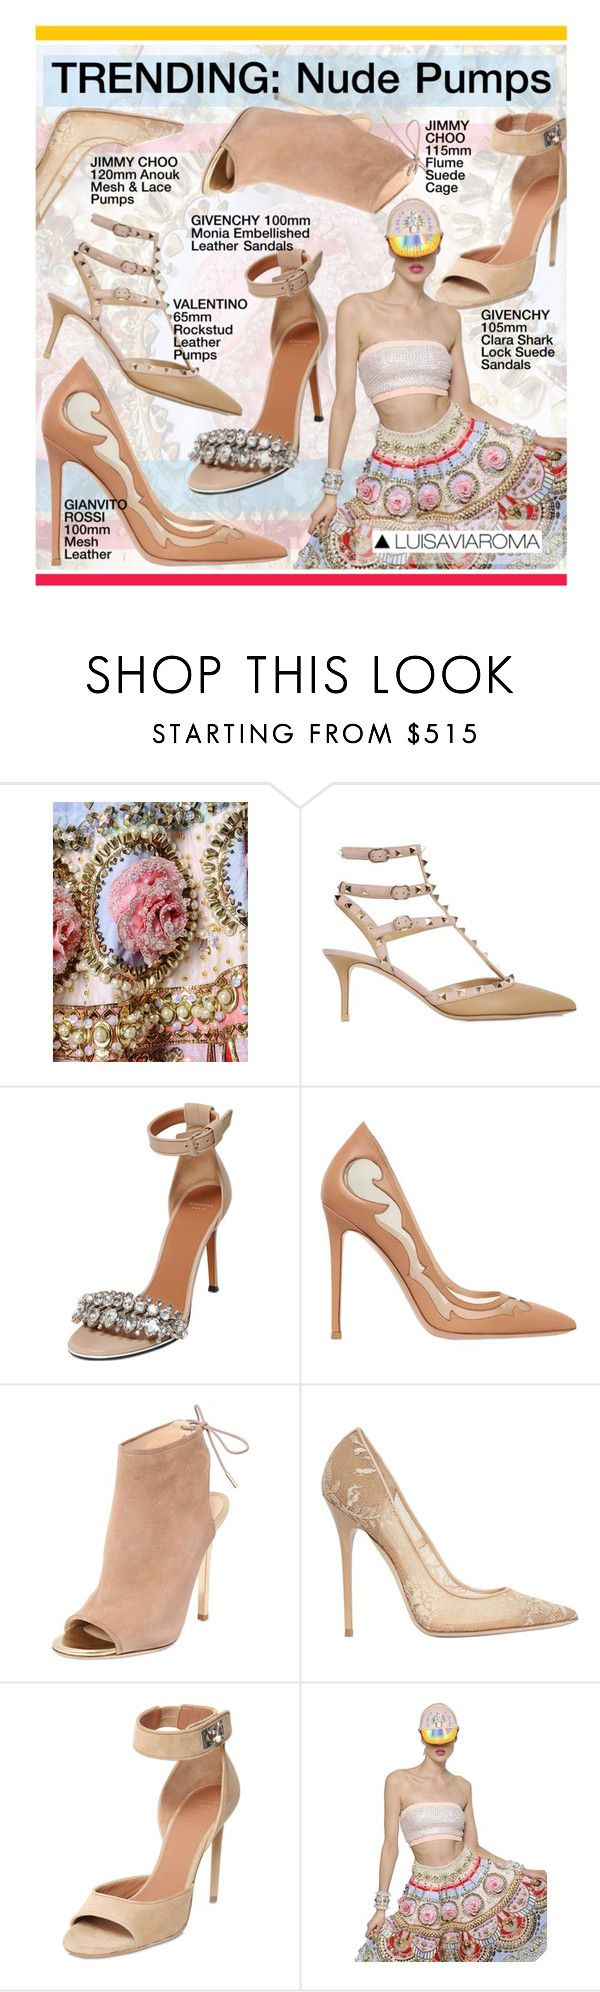 """#Trending #NudePumps from @Luisaviaroma"" by rvgems ❤ liked on Polyvore featuring Manish Arora, Valentino, Givenchy, Gianvito Rossi, Jimmy Choo, women's clothing, women's fashion, women, female and woman"